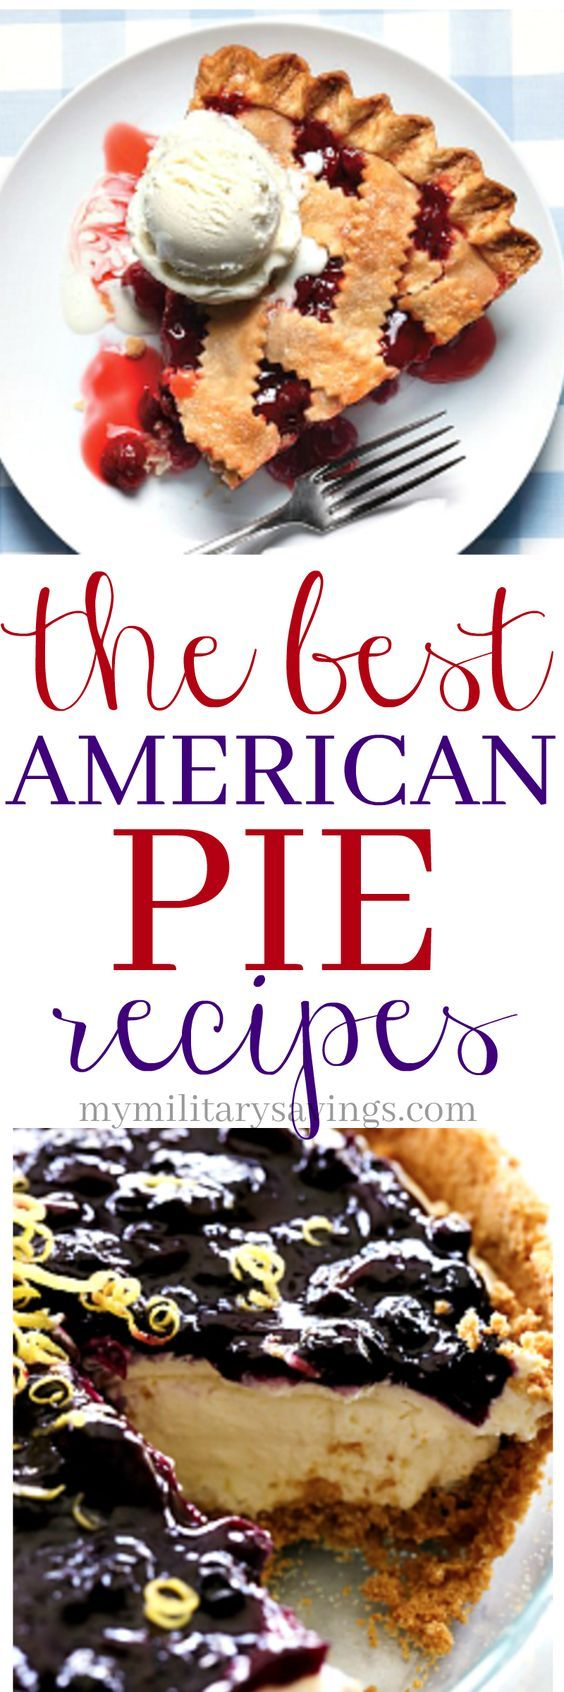 From classic cherry pie, to Mississippi mud pie, there's a slice for everyone in this list of the BEST American pie recipes!